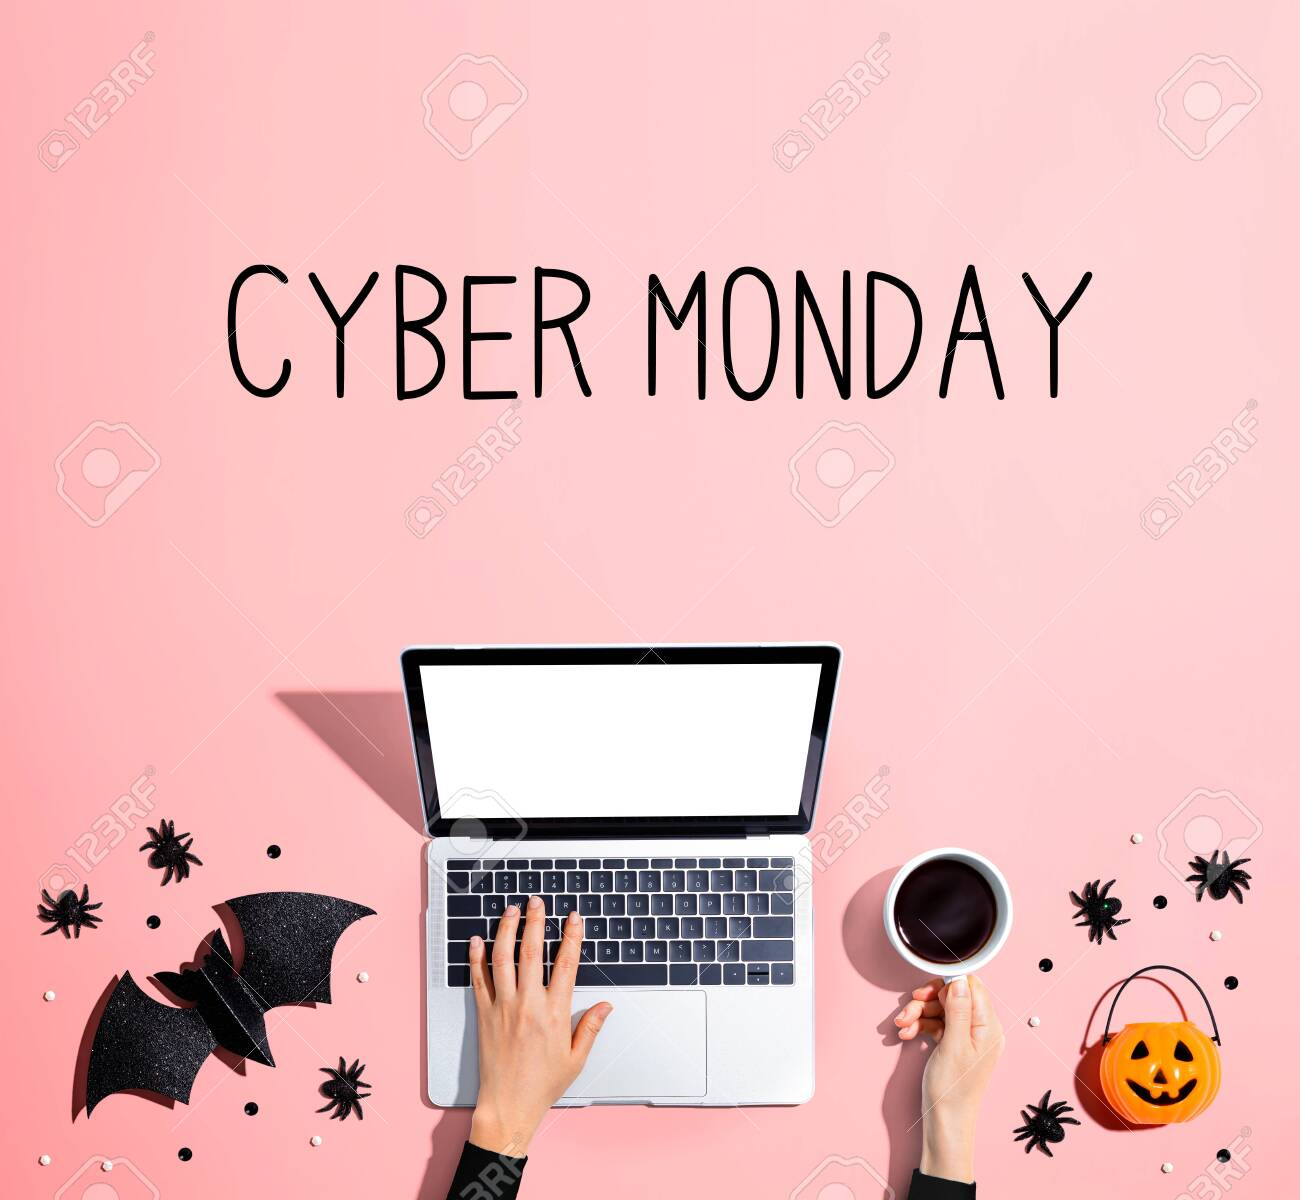 Cyber Monday banner with laptop and Halloween decorations - flat lay - 131437003